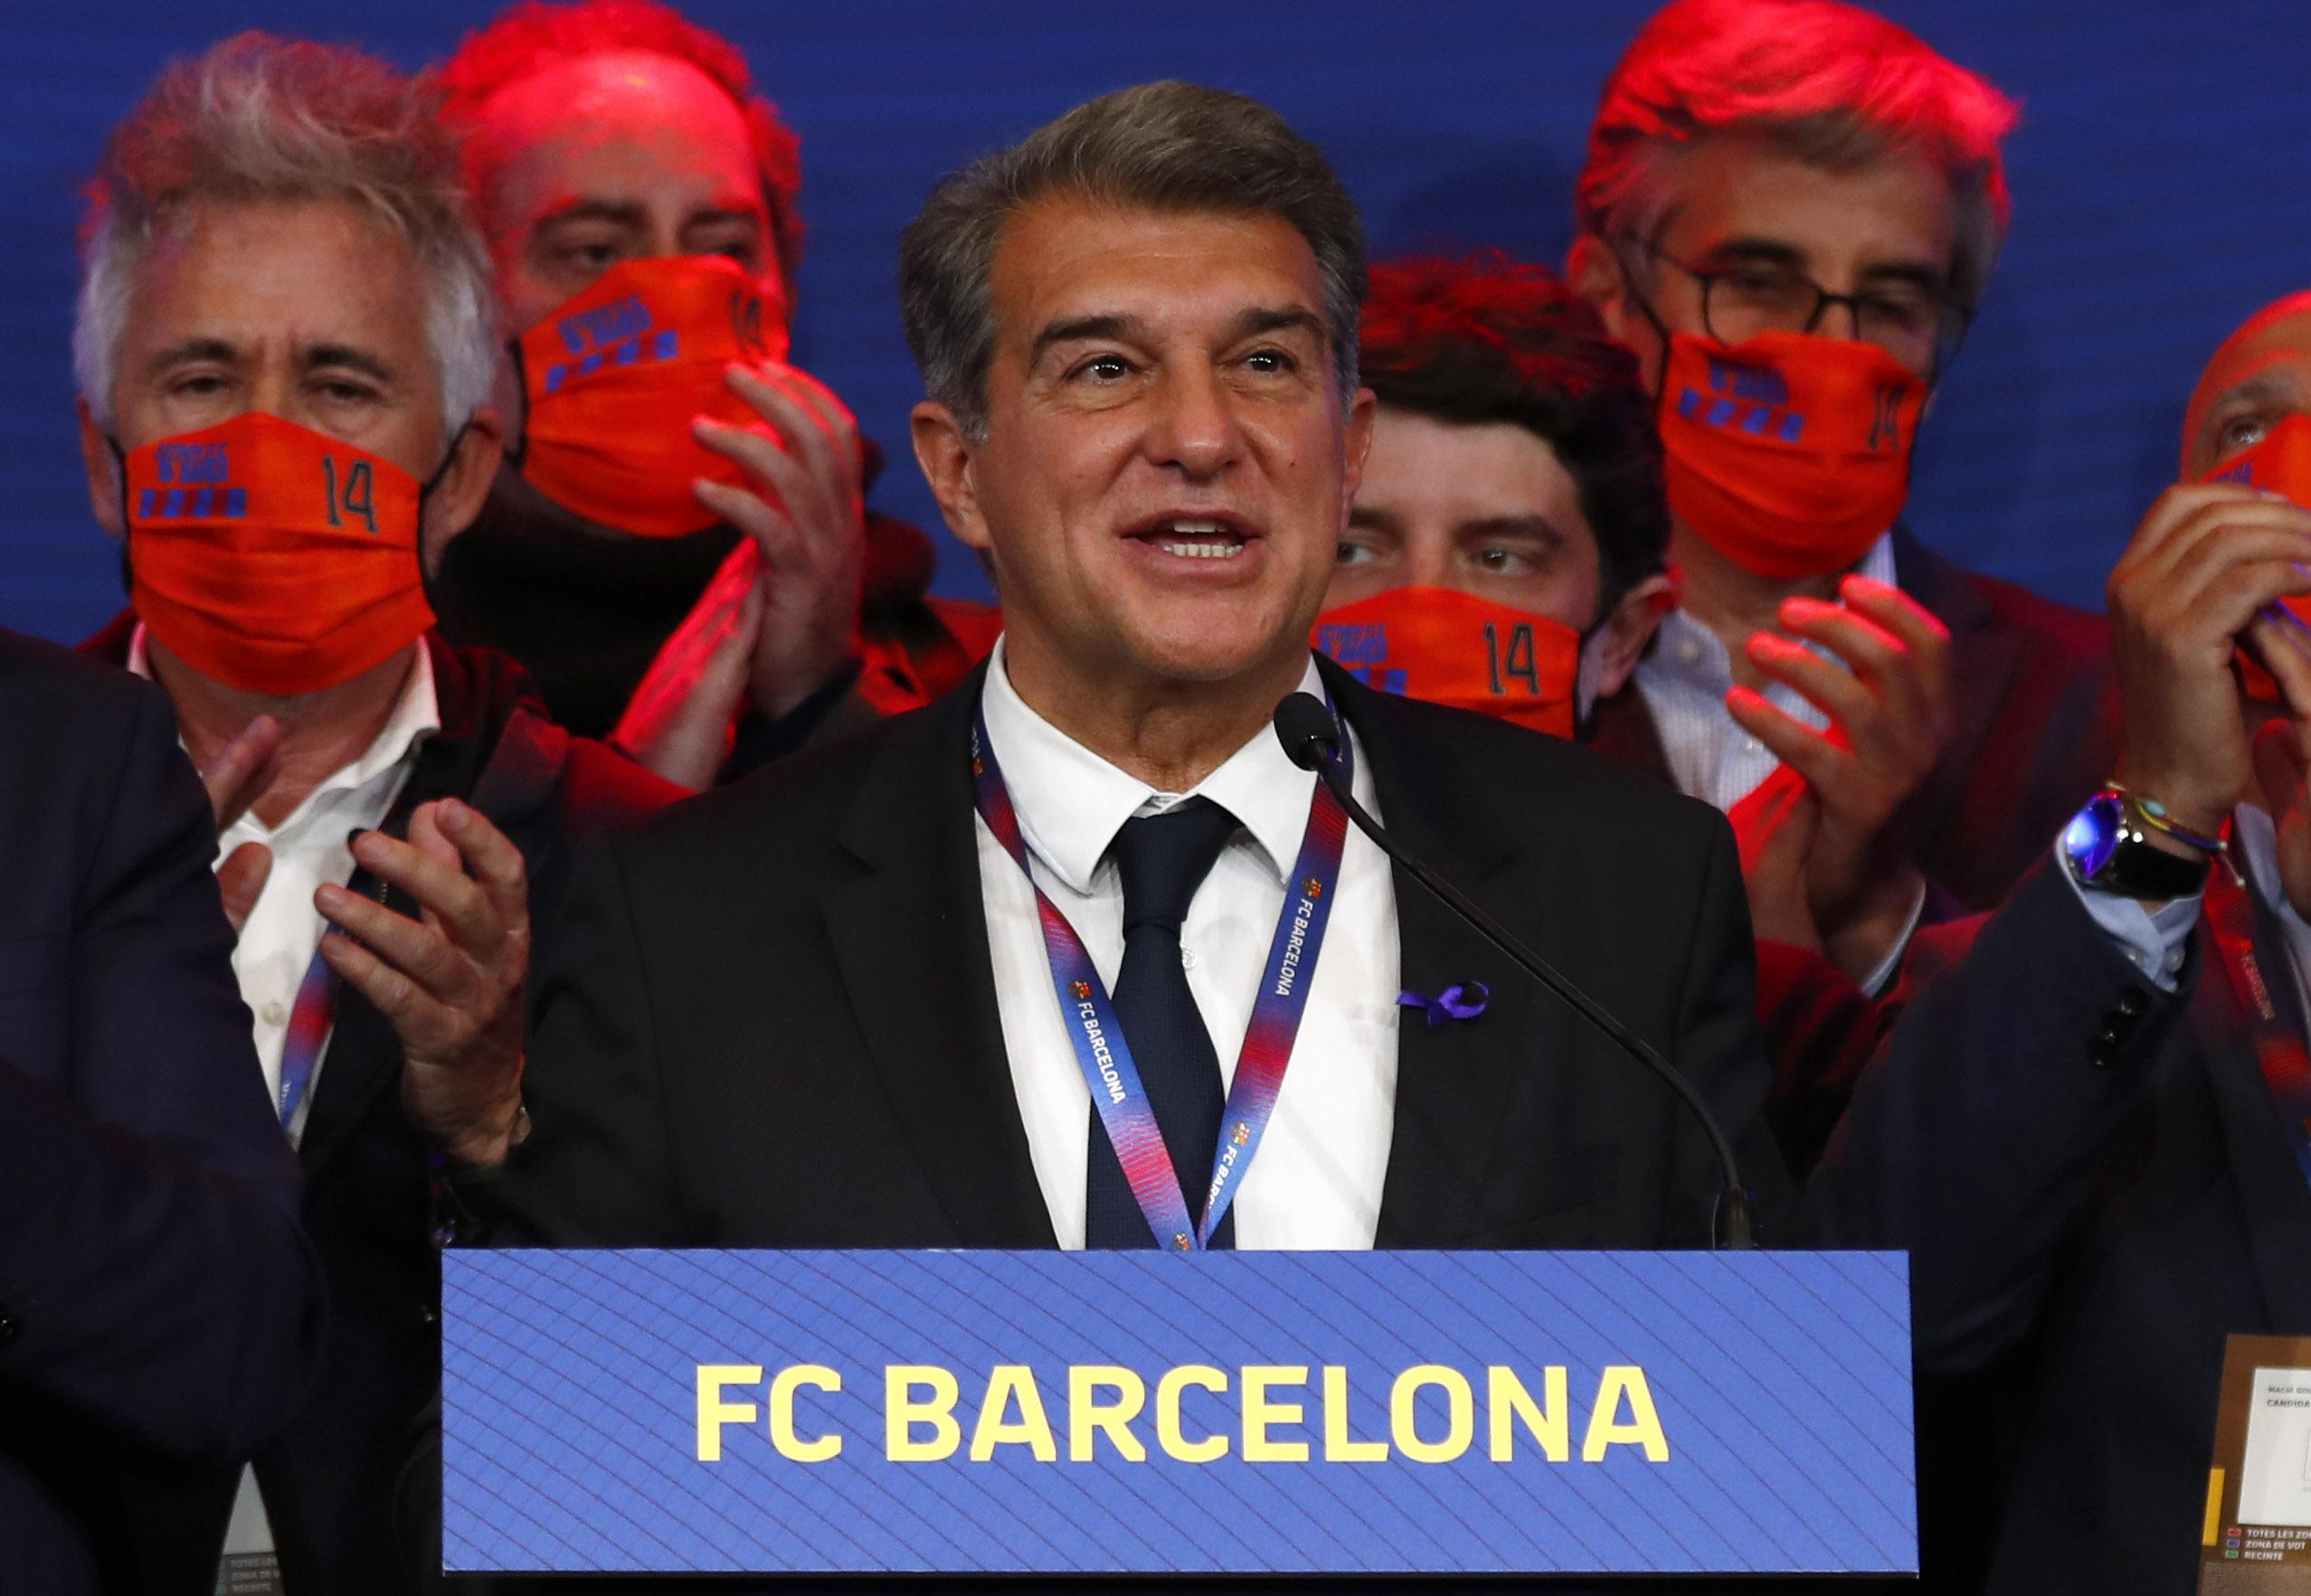 Barcelona maintains support of Super League despite backlash